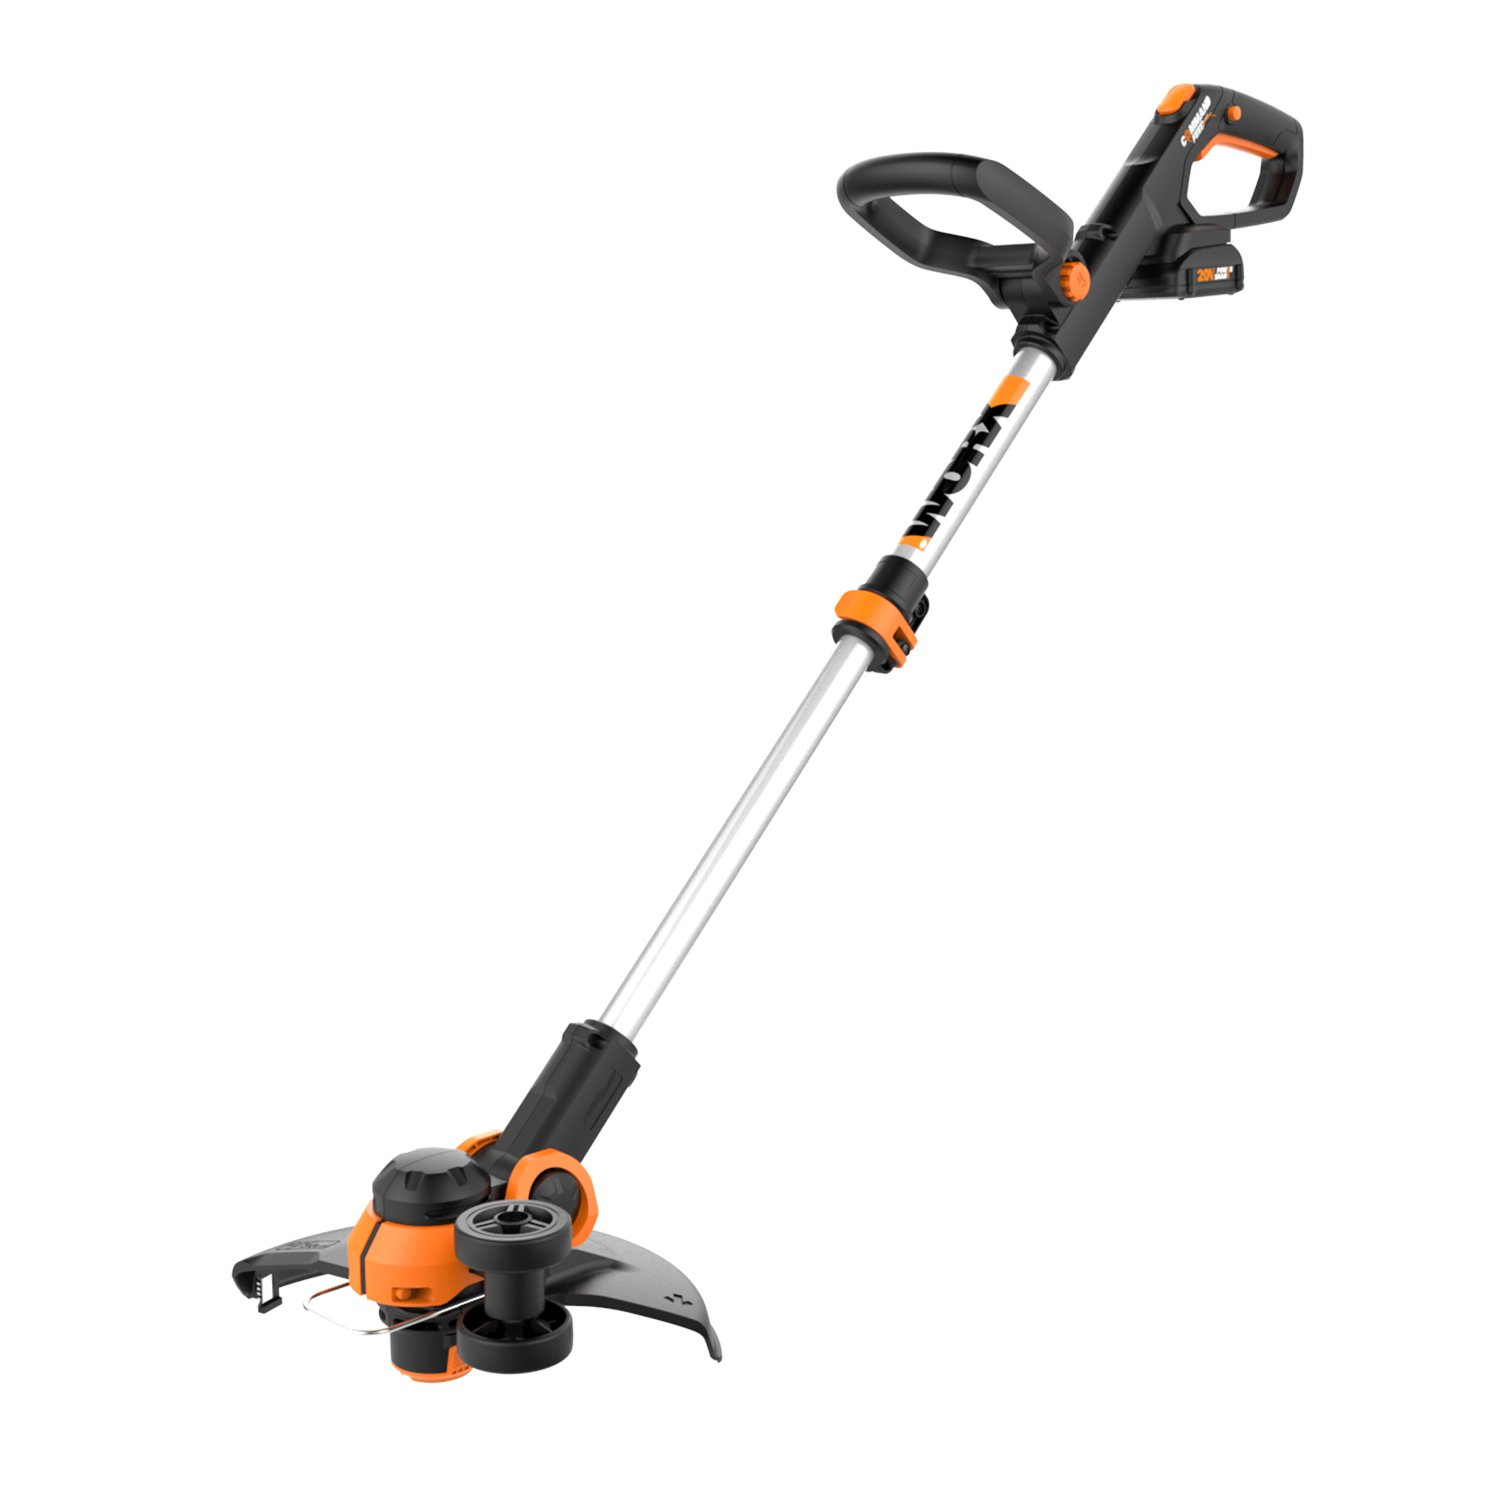 WORX WG163 GT 3 0 20V Cordless Grass Trimmer Edger with mand Feed